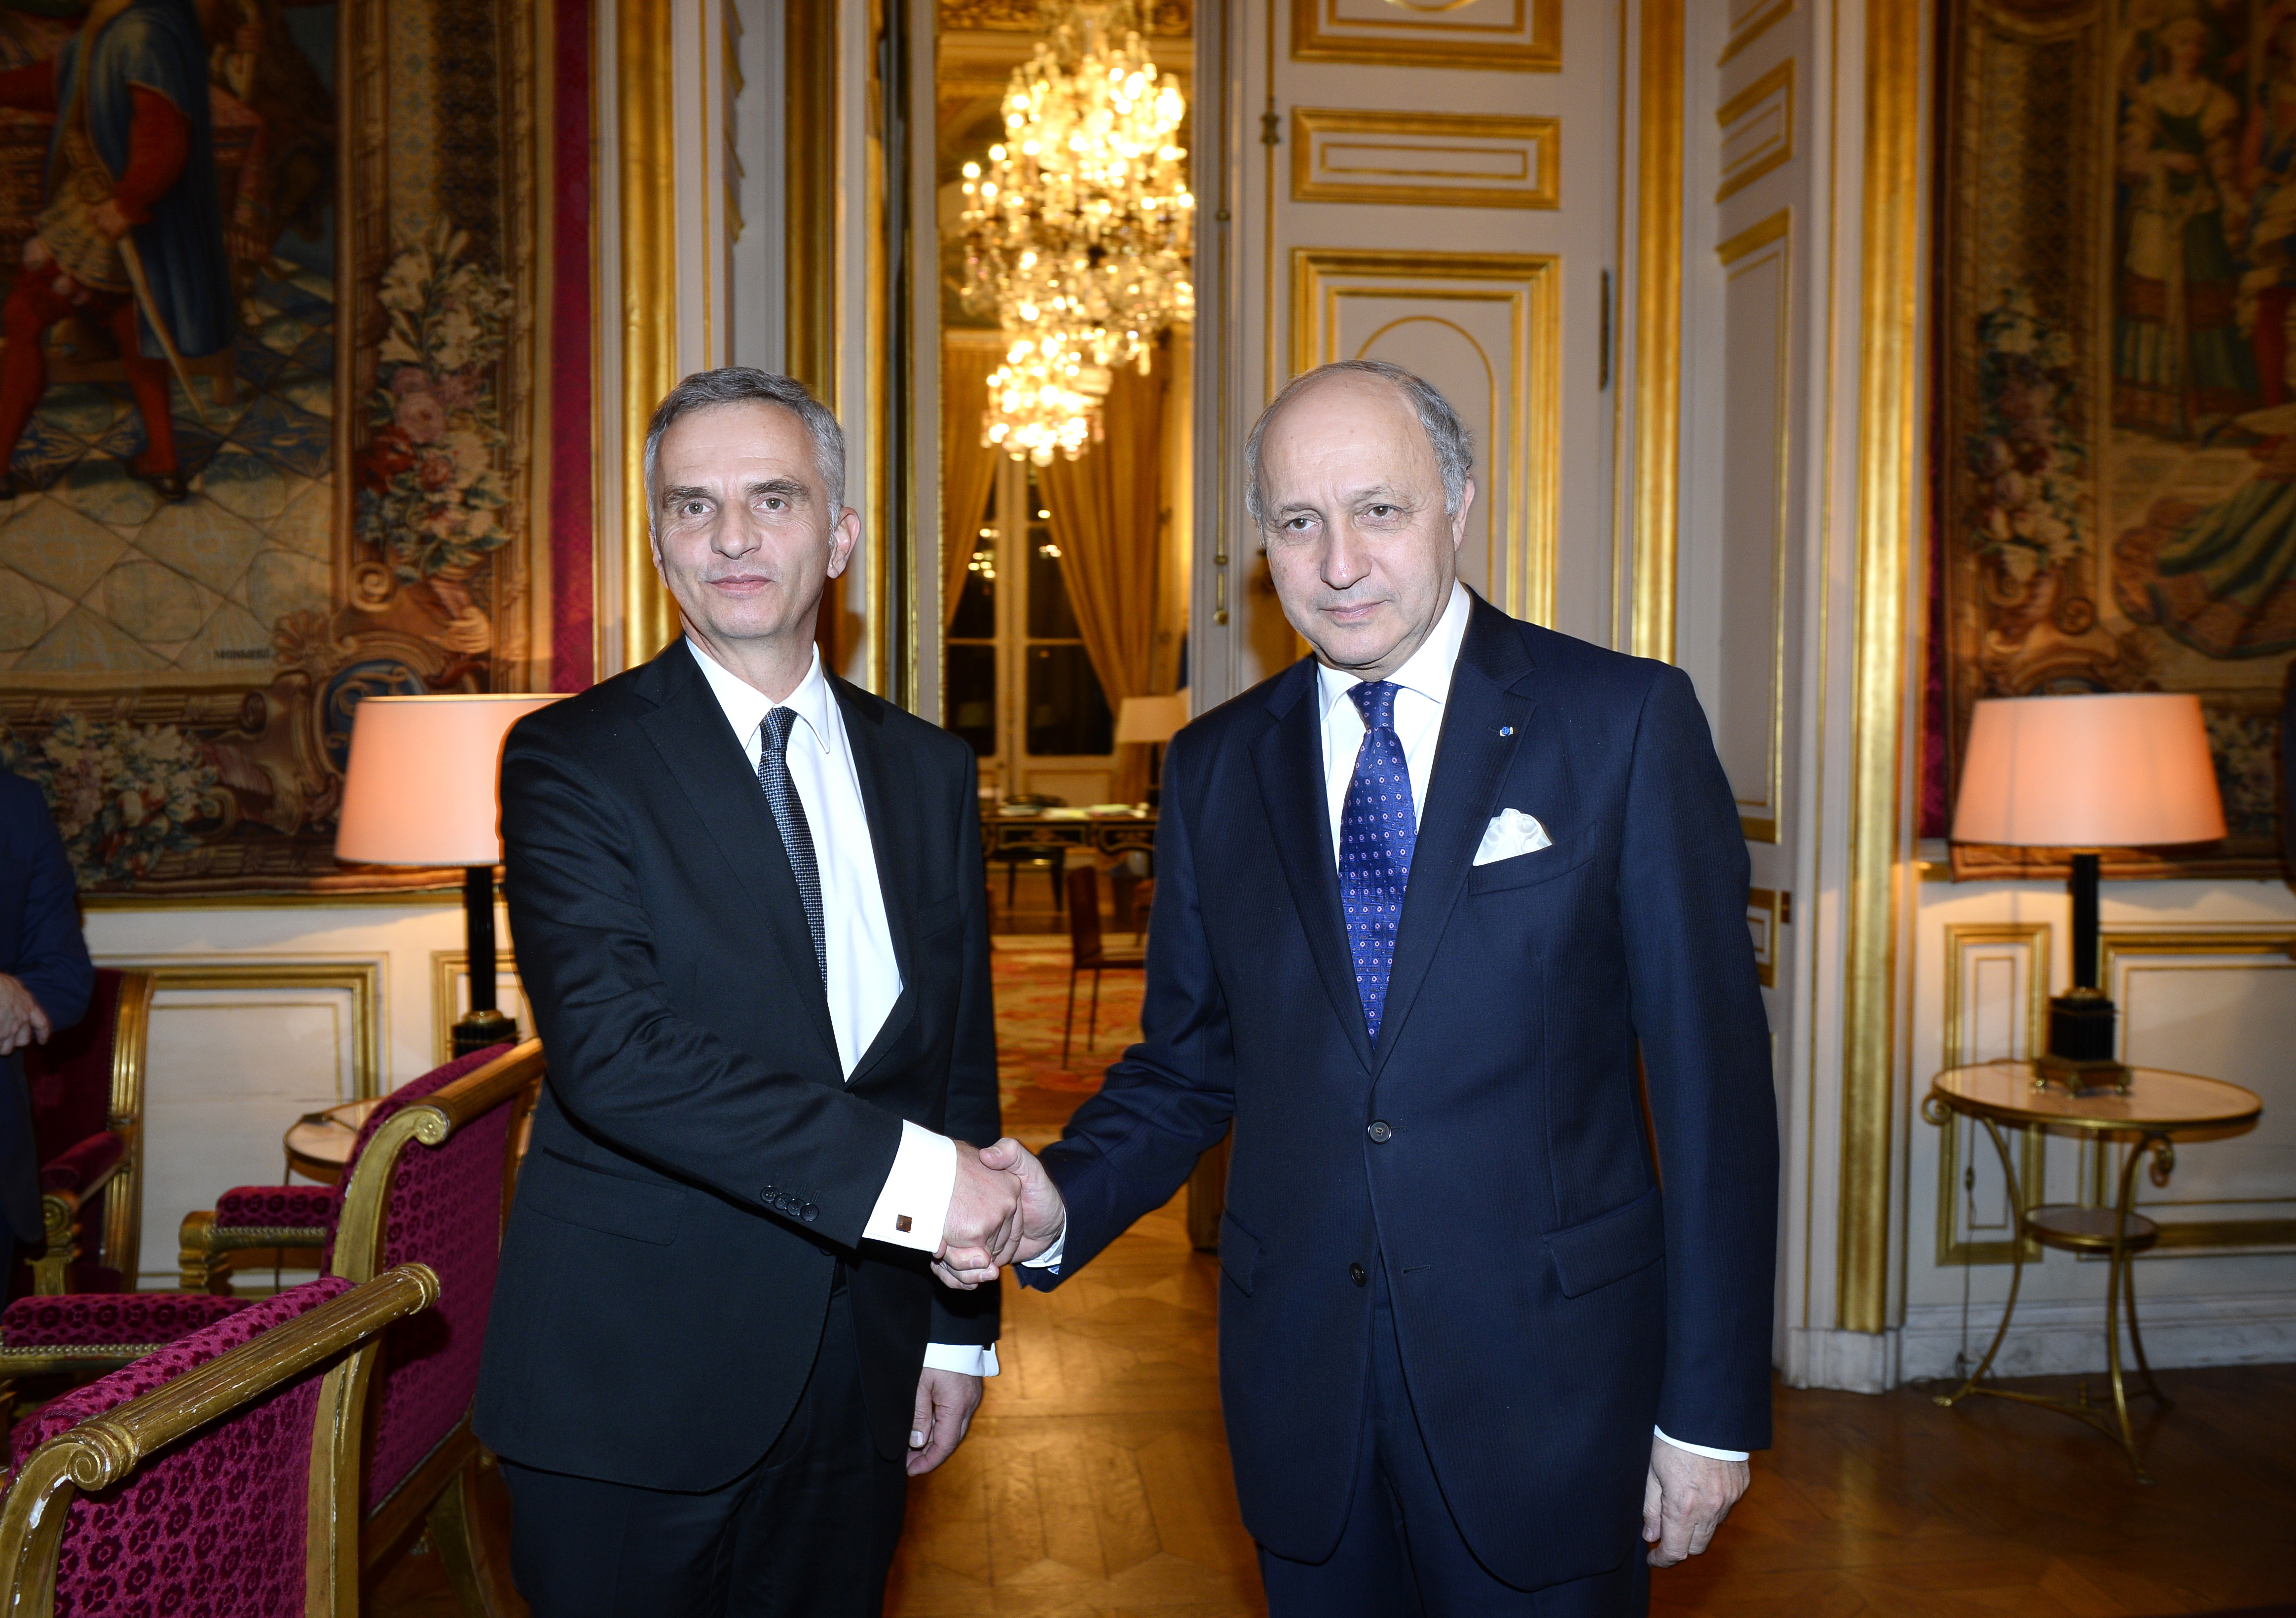 Didier Burkhalter und Laurent Fabius in Paris.